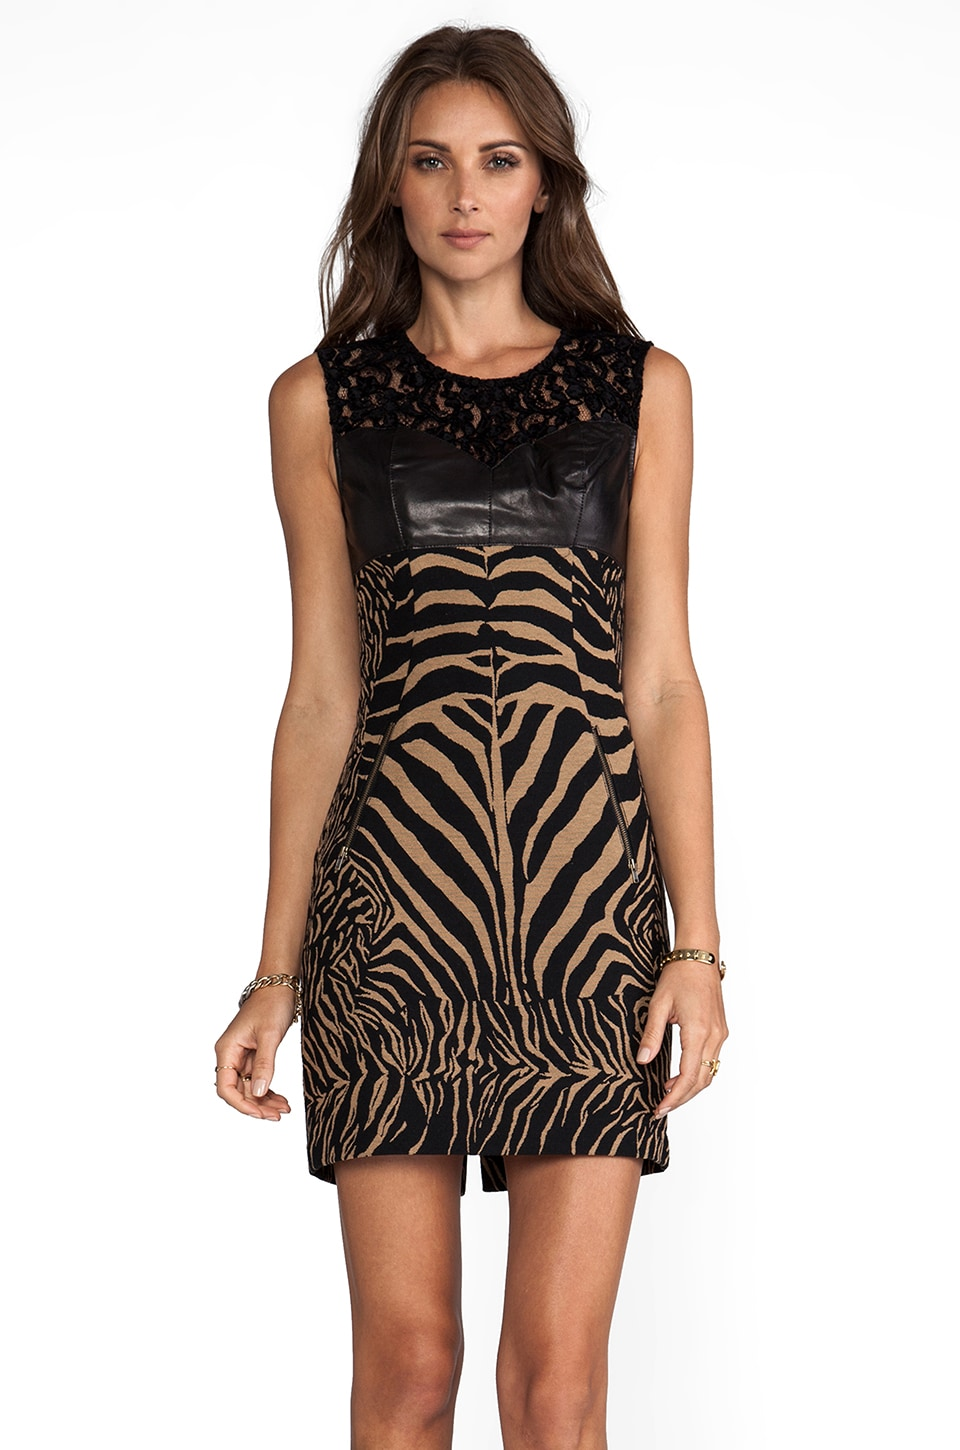 Tracy Reese Zebra/Ocelot Stretch Jacquard Combo Shift With Leather Dress in Tan/Black